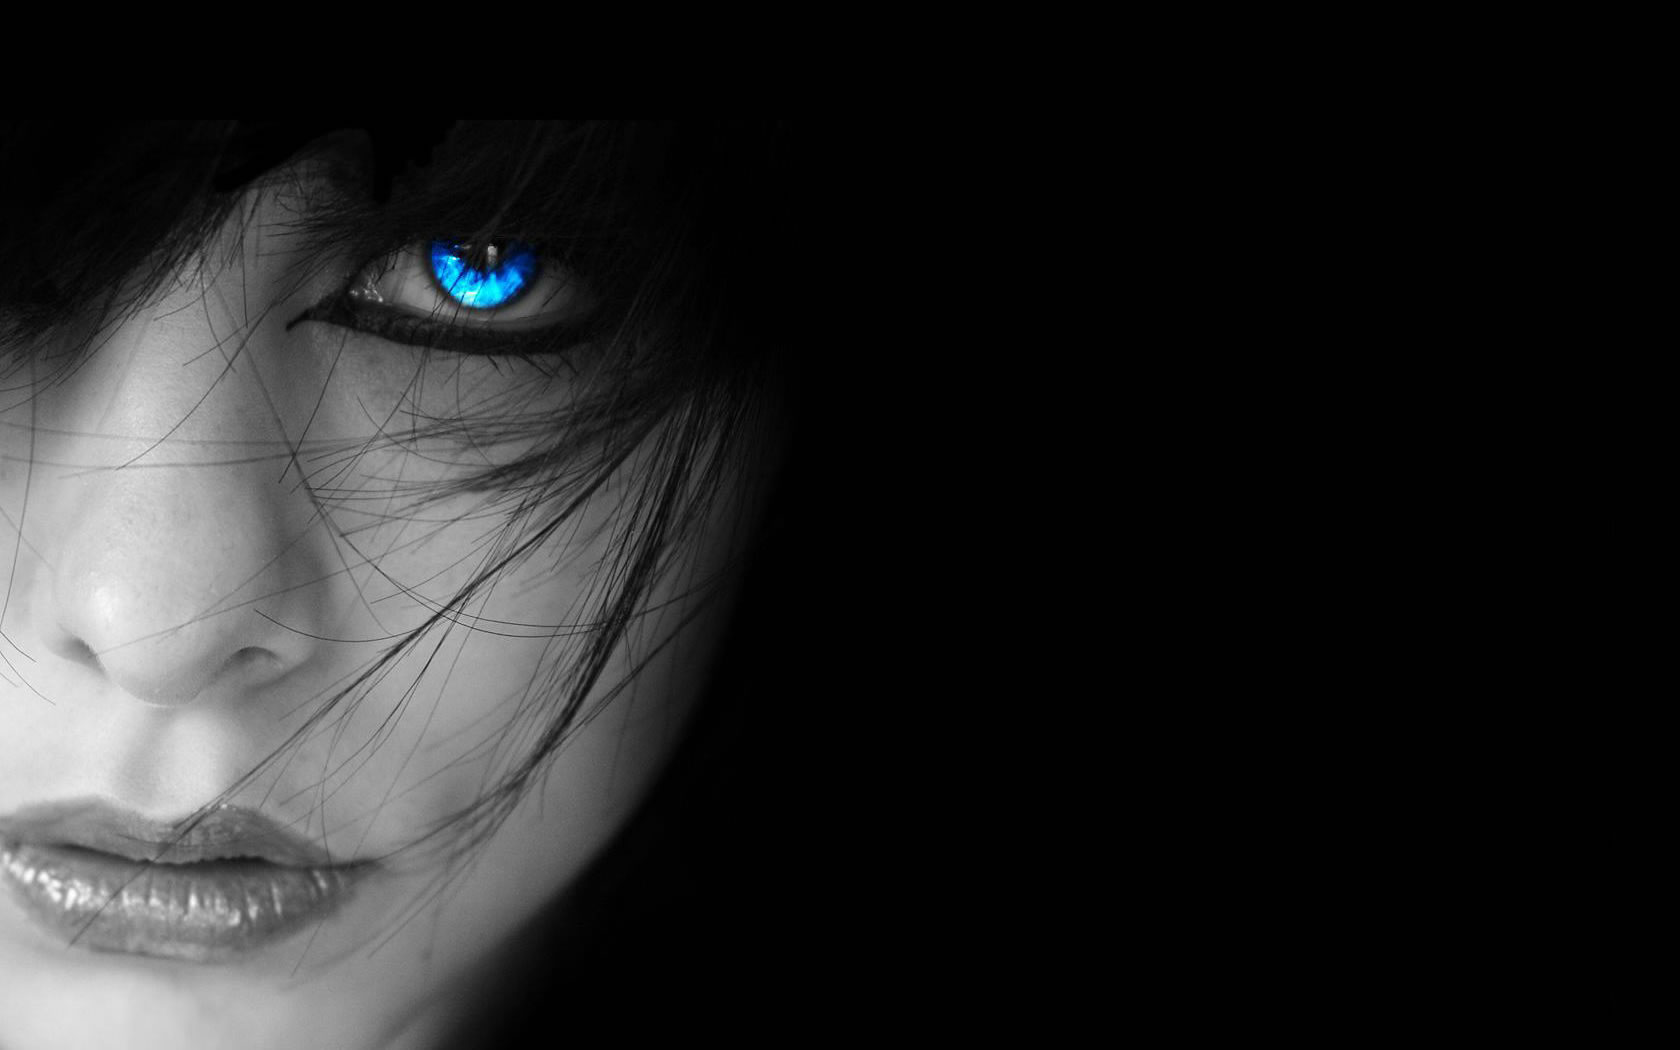 HD Wallpapers Free Beautiful Girl with Blue Eyes at Night wallpaper